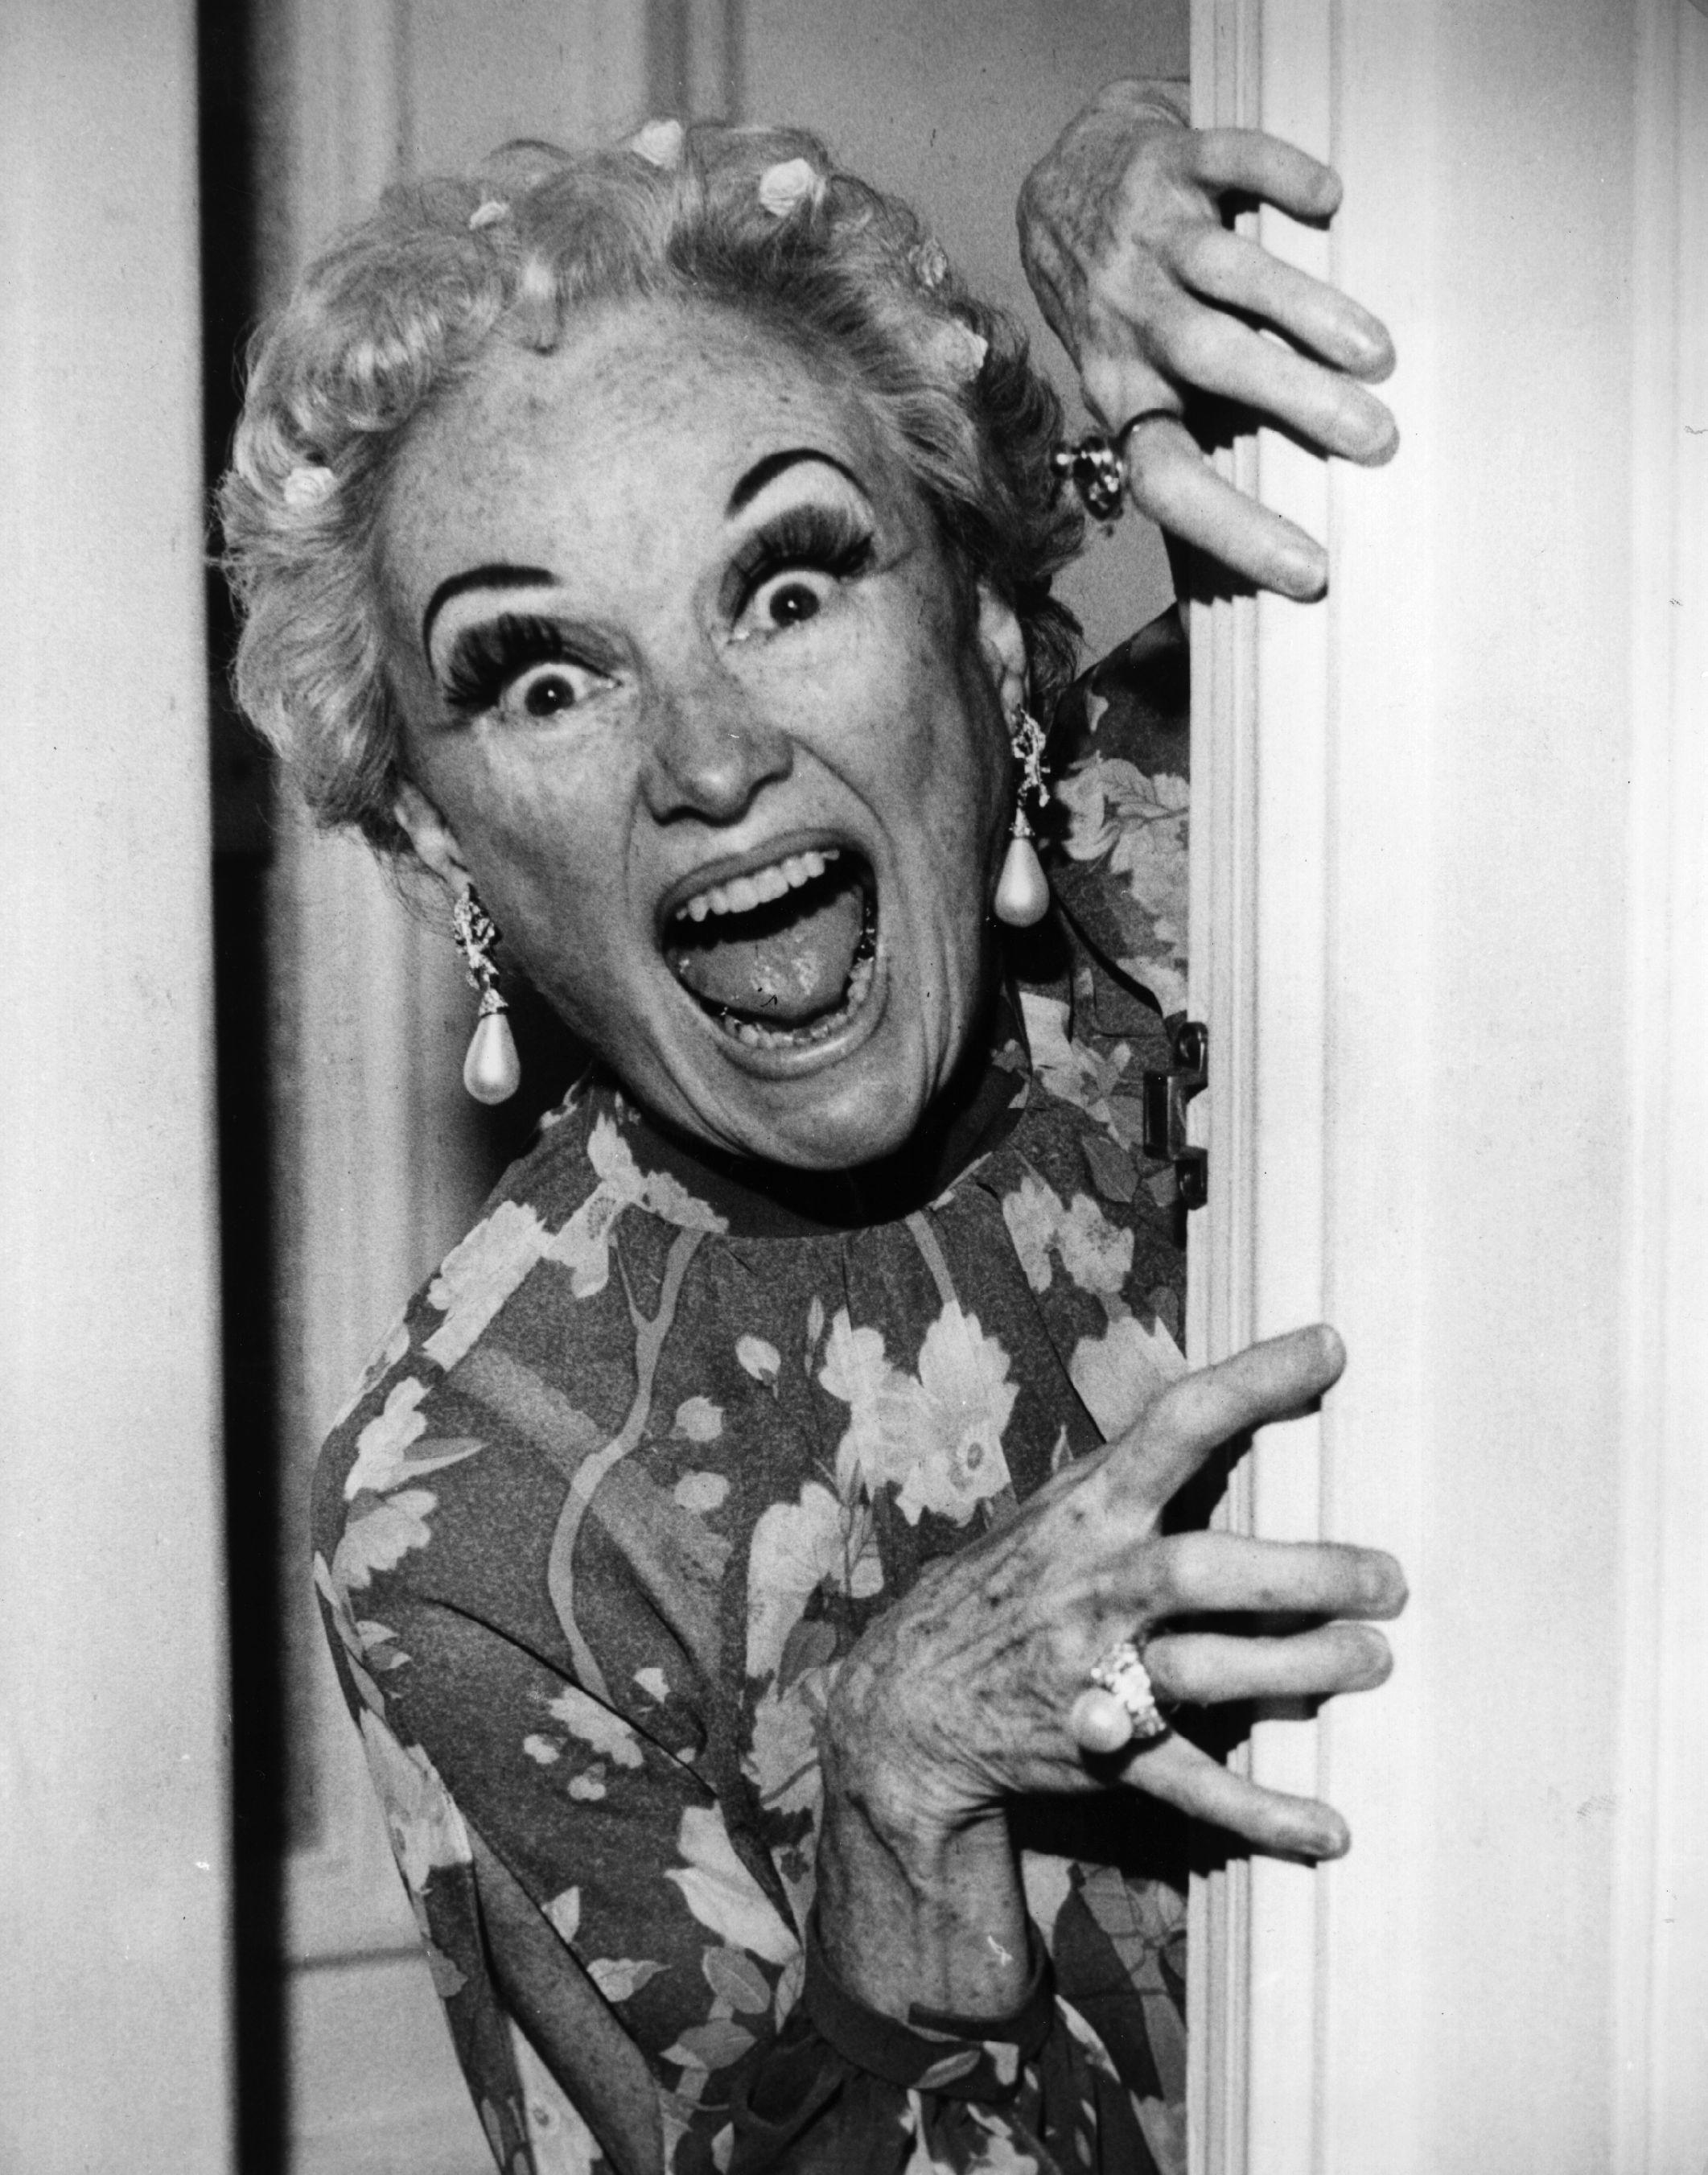 phyllis diller chiliphyllis diller quotes, phyllis diller cause of death, phyllis diller, phyllis diller fang, phyllis diller laugh, phyllis diller images, phyllis diller net worth, phyllis diller husband, phyllis diller young, phyllis diller daughter, phyllis diller movies, phyllis diller pictures, phyllis diller youtube, phyllis diller photos, phyllis diller age, phyllis diller wikipedia, phyllis diller wiki, phyllis diller scooby doo, phyllis diller imdb, phyllis diller chili